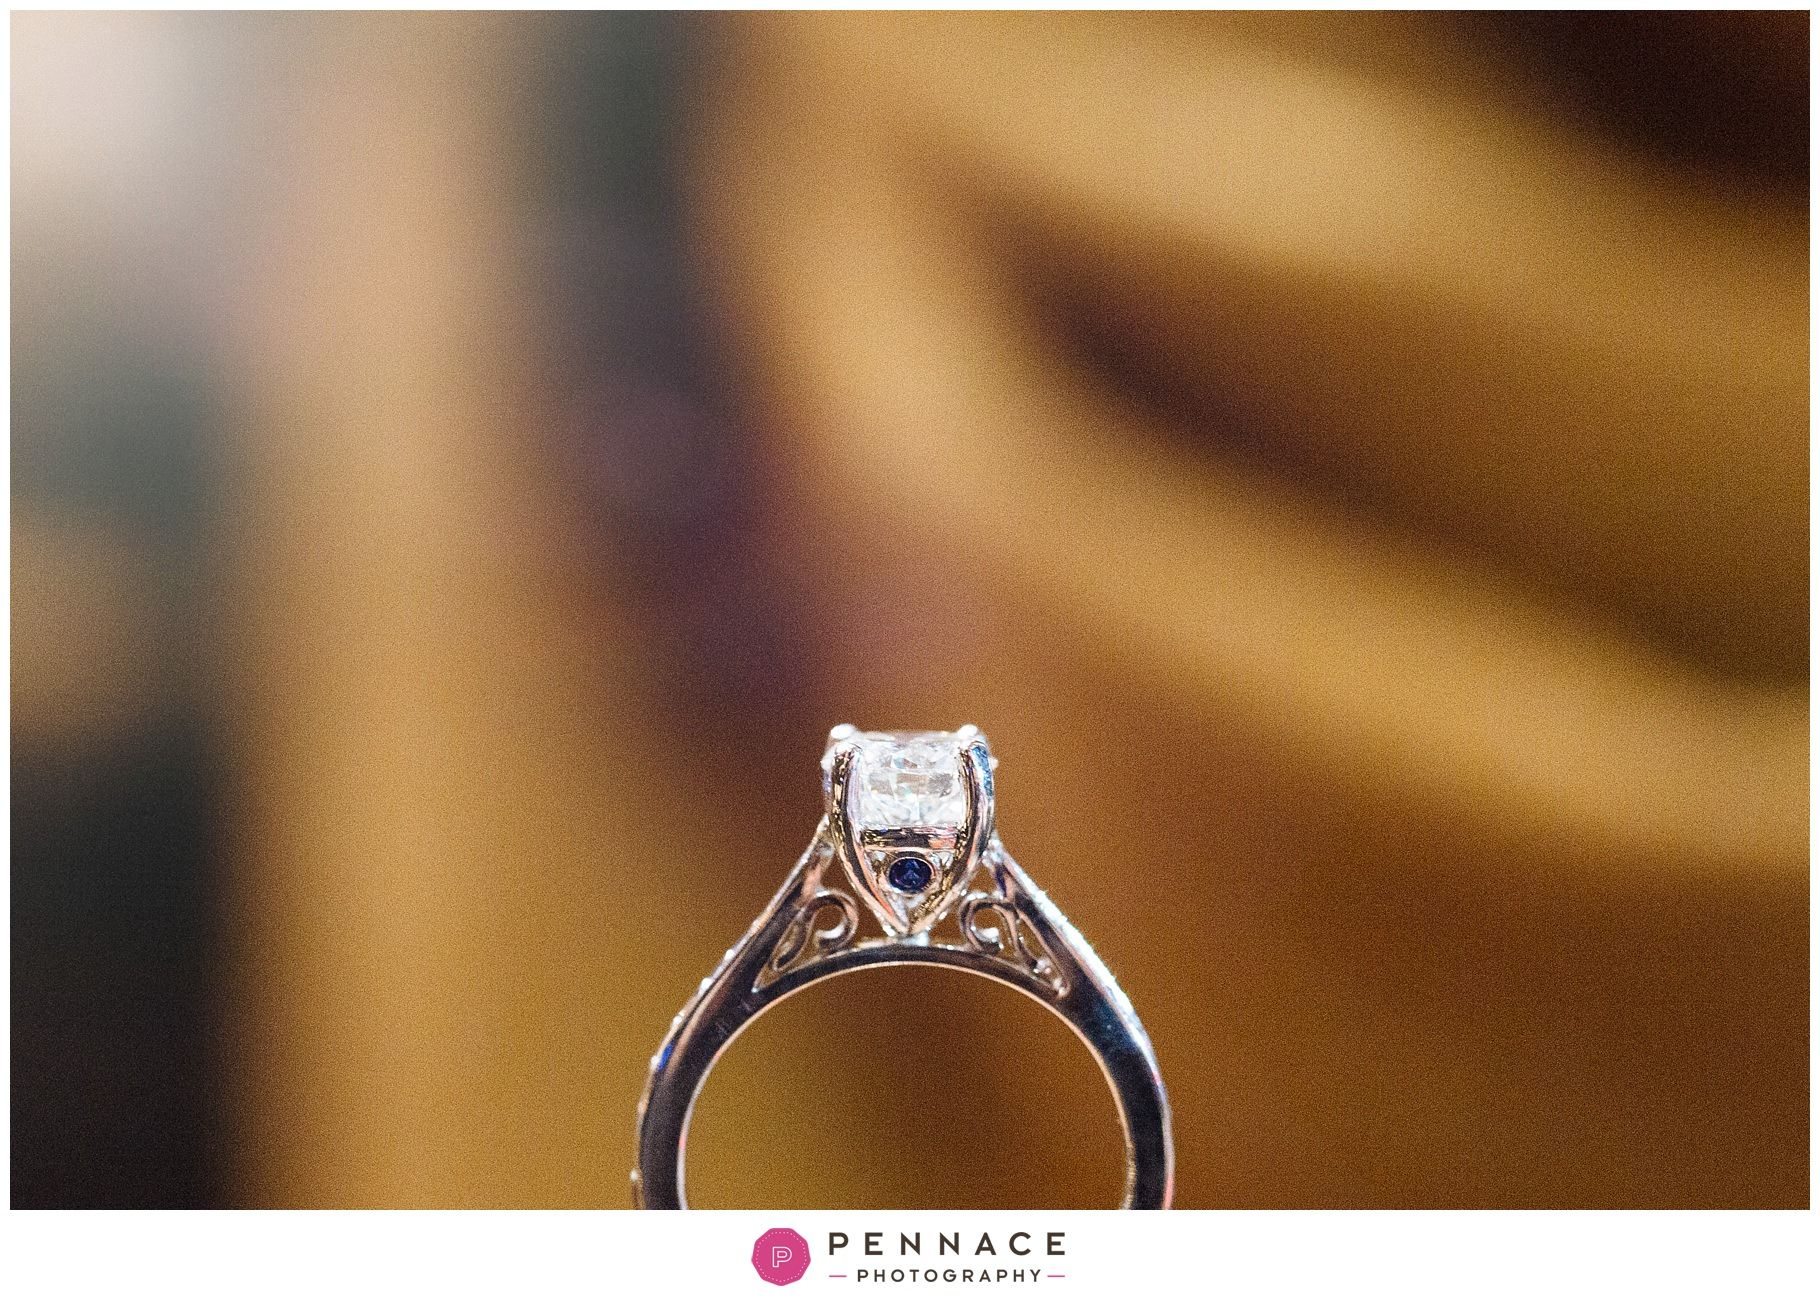 Wedding And Engagement Rings 2015 Year In Review Nyc Elopement And Proposal Photographe Engagement Rings Sapphire Engagement Rings Wedding Rings Engagement